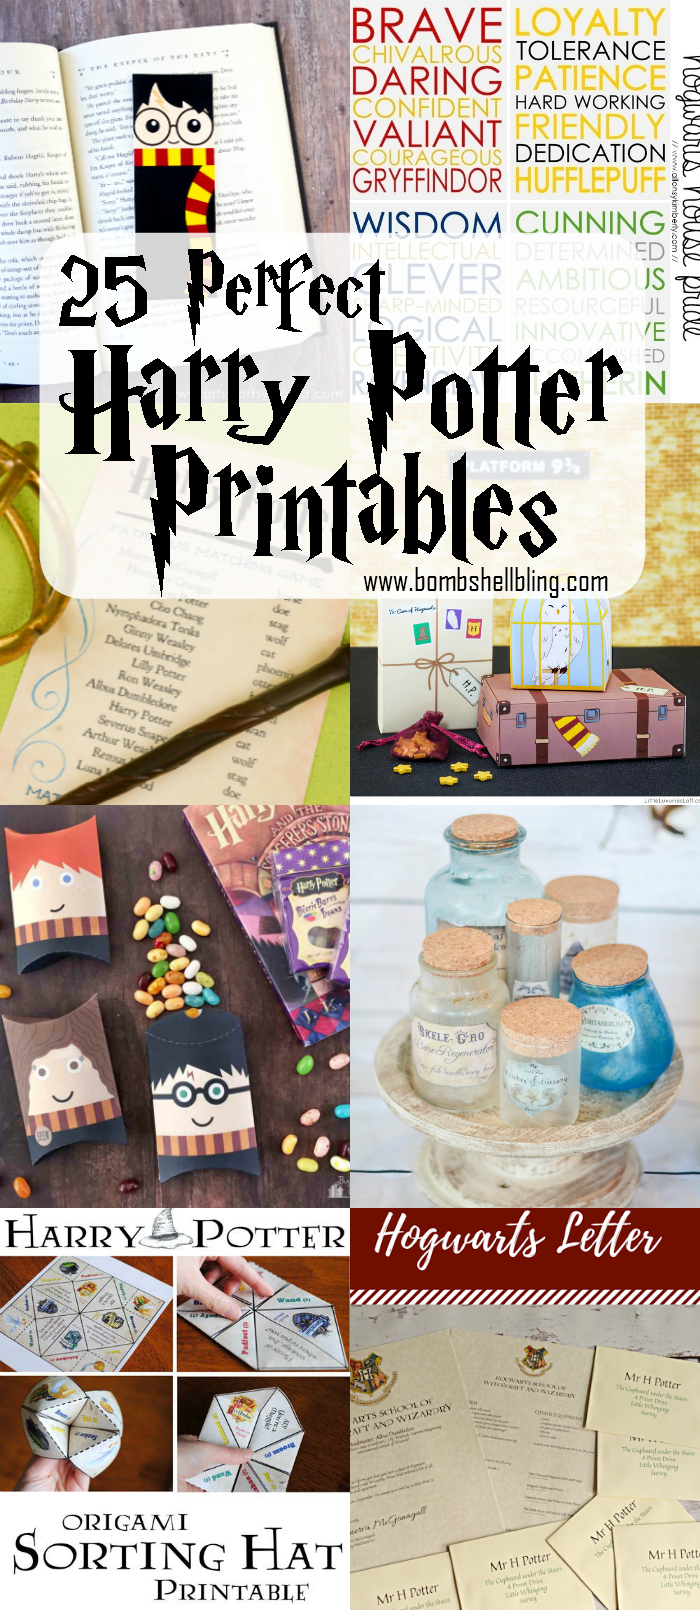 photo relating to Hogwarts Sign Printable named 25 Fantastic Harry Potter Printables - Gathered by way of Bombs